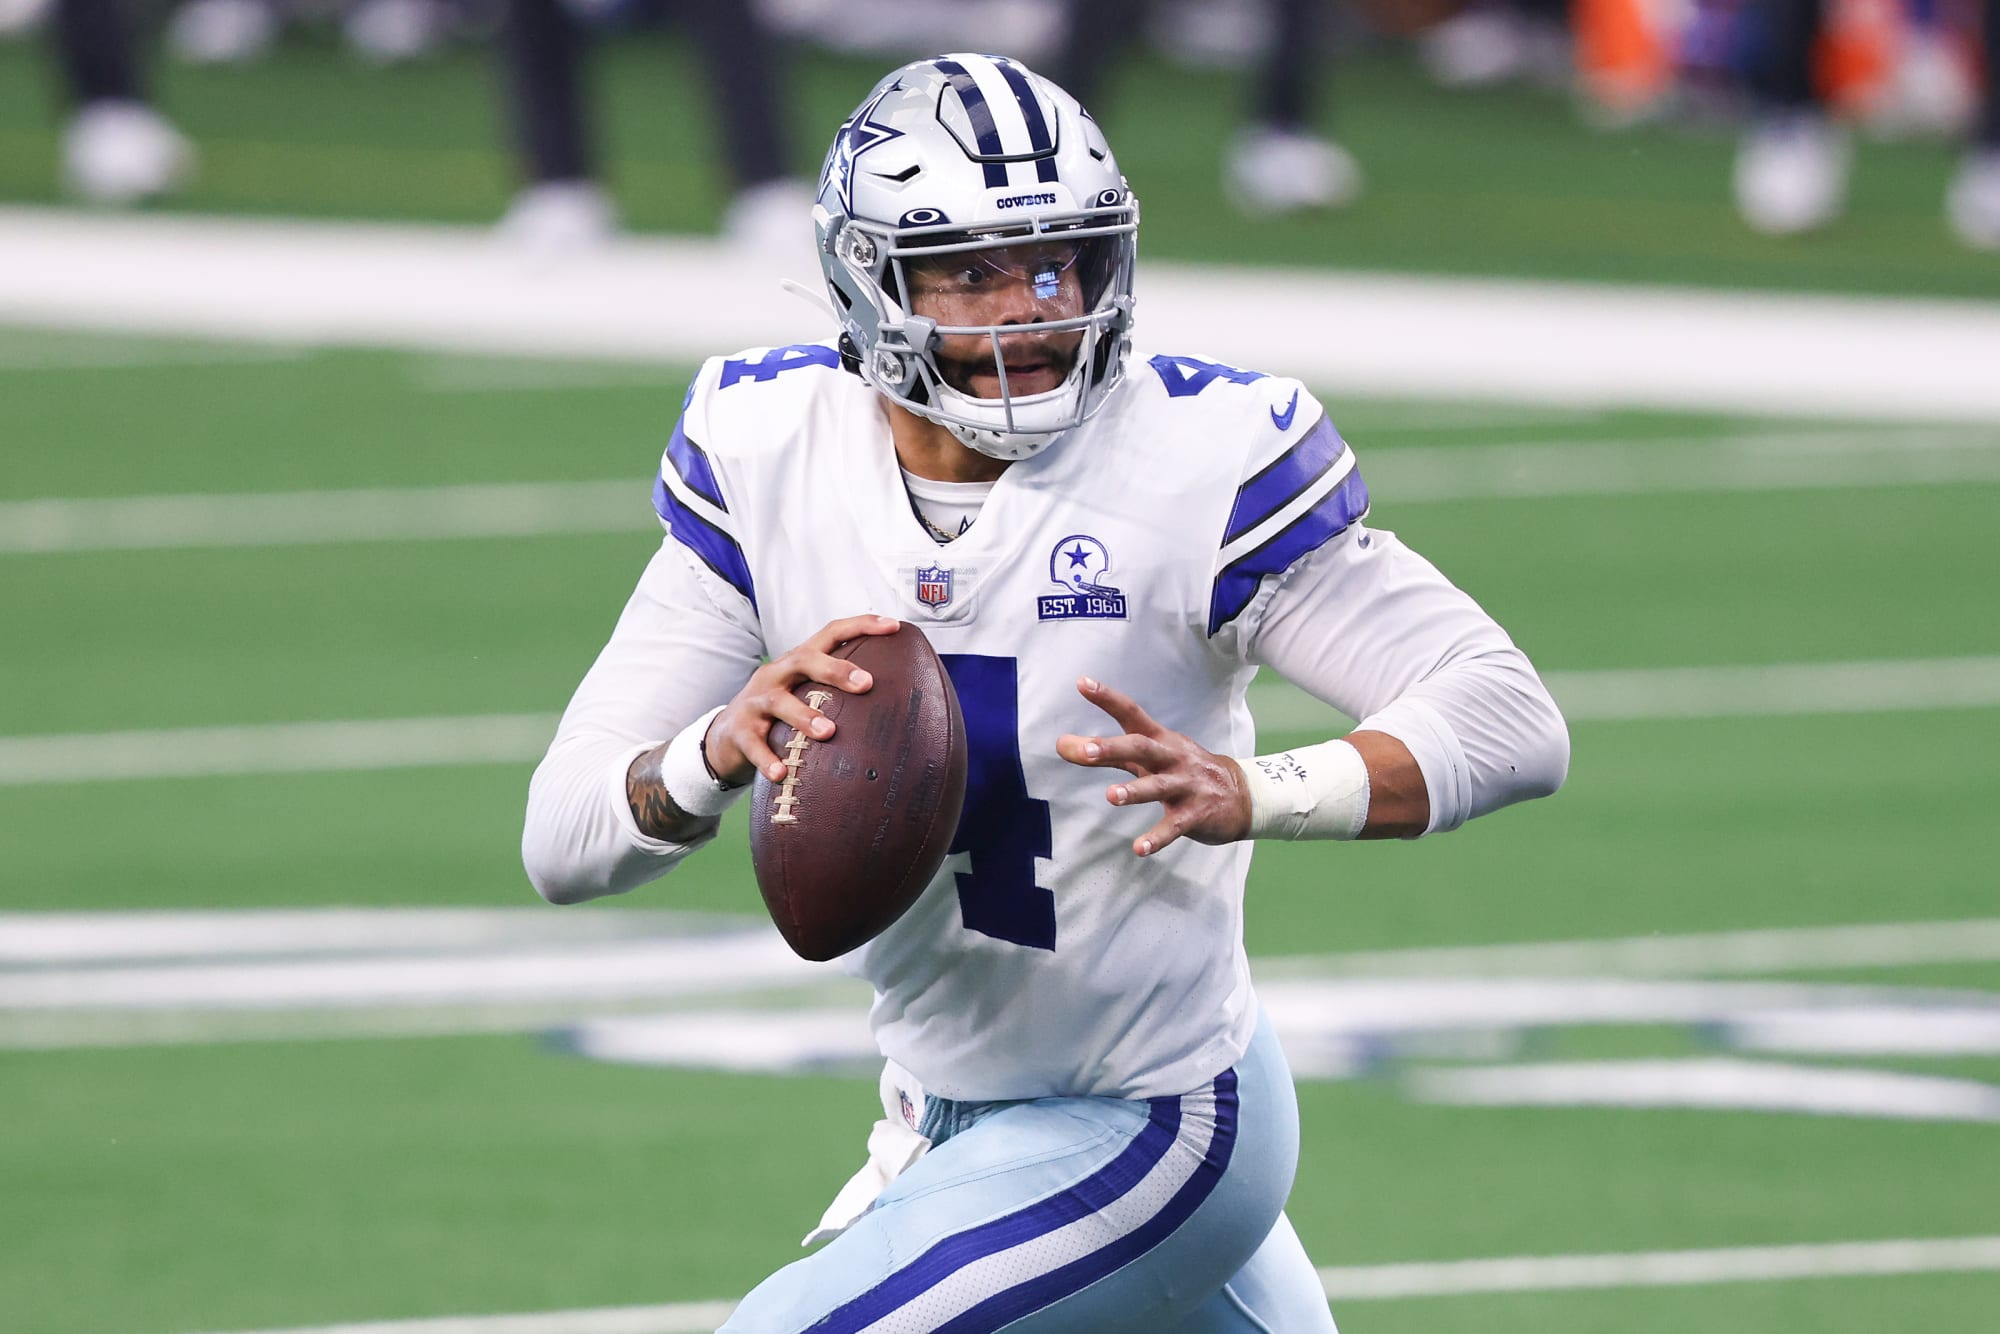 Dak Prescott celebrates GF's birthday in the Bahamas (Photo)